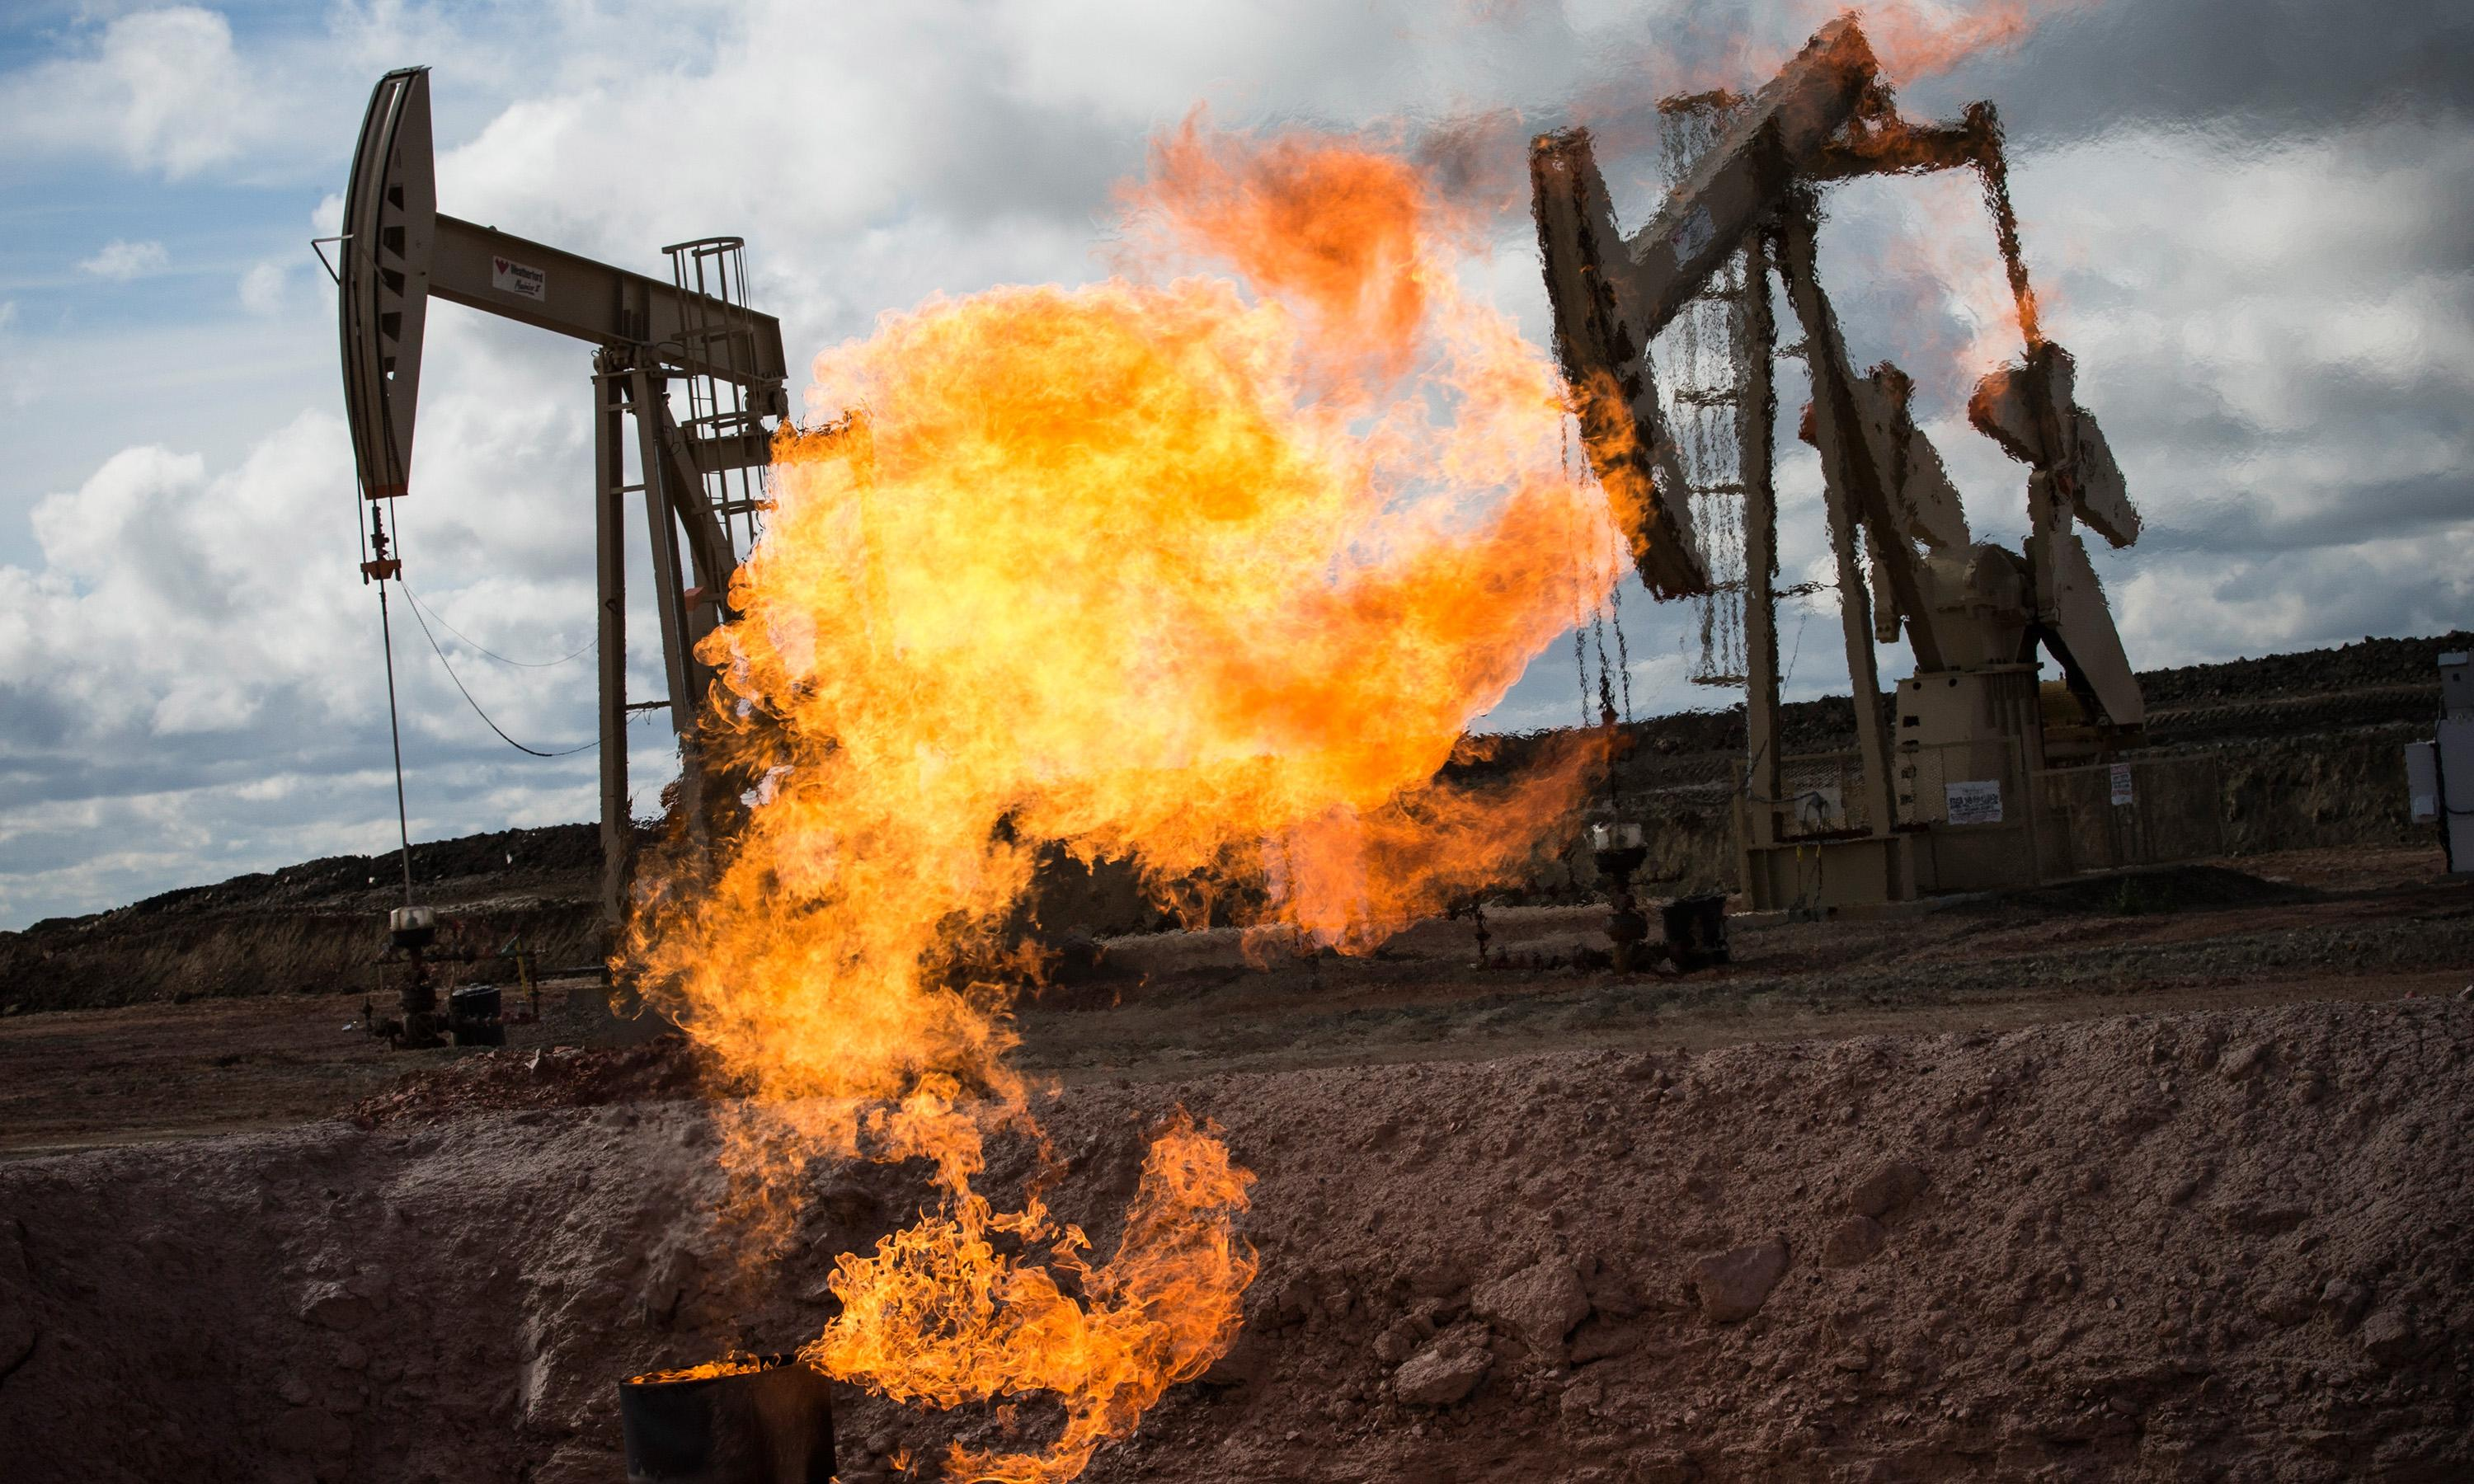 Fracking causing rise in methane emissions, study finds